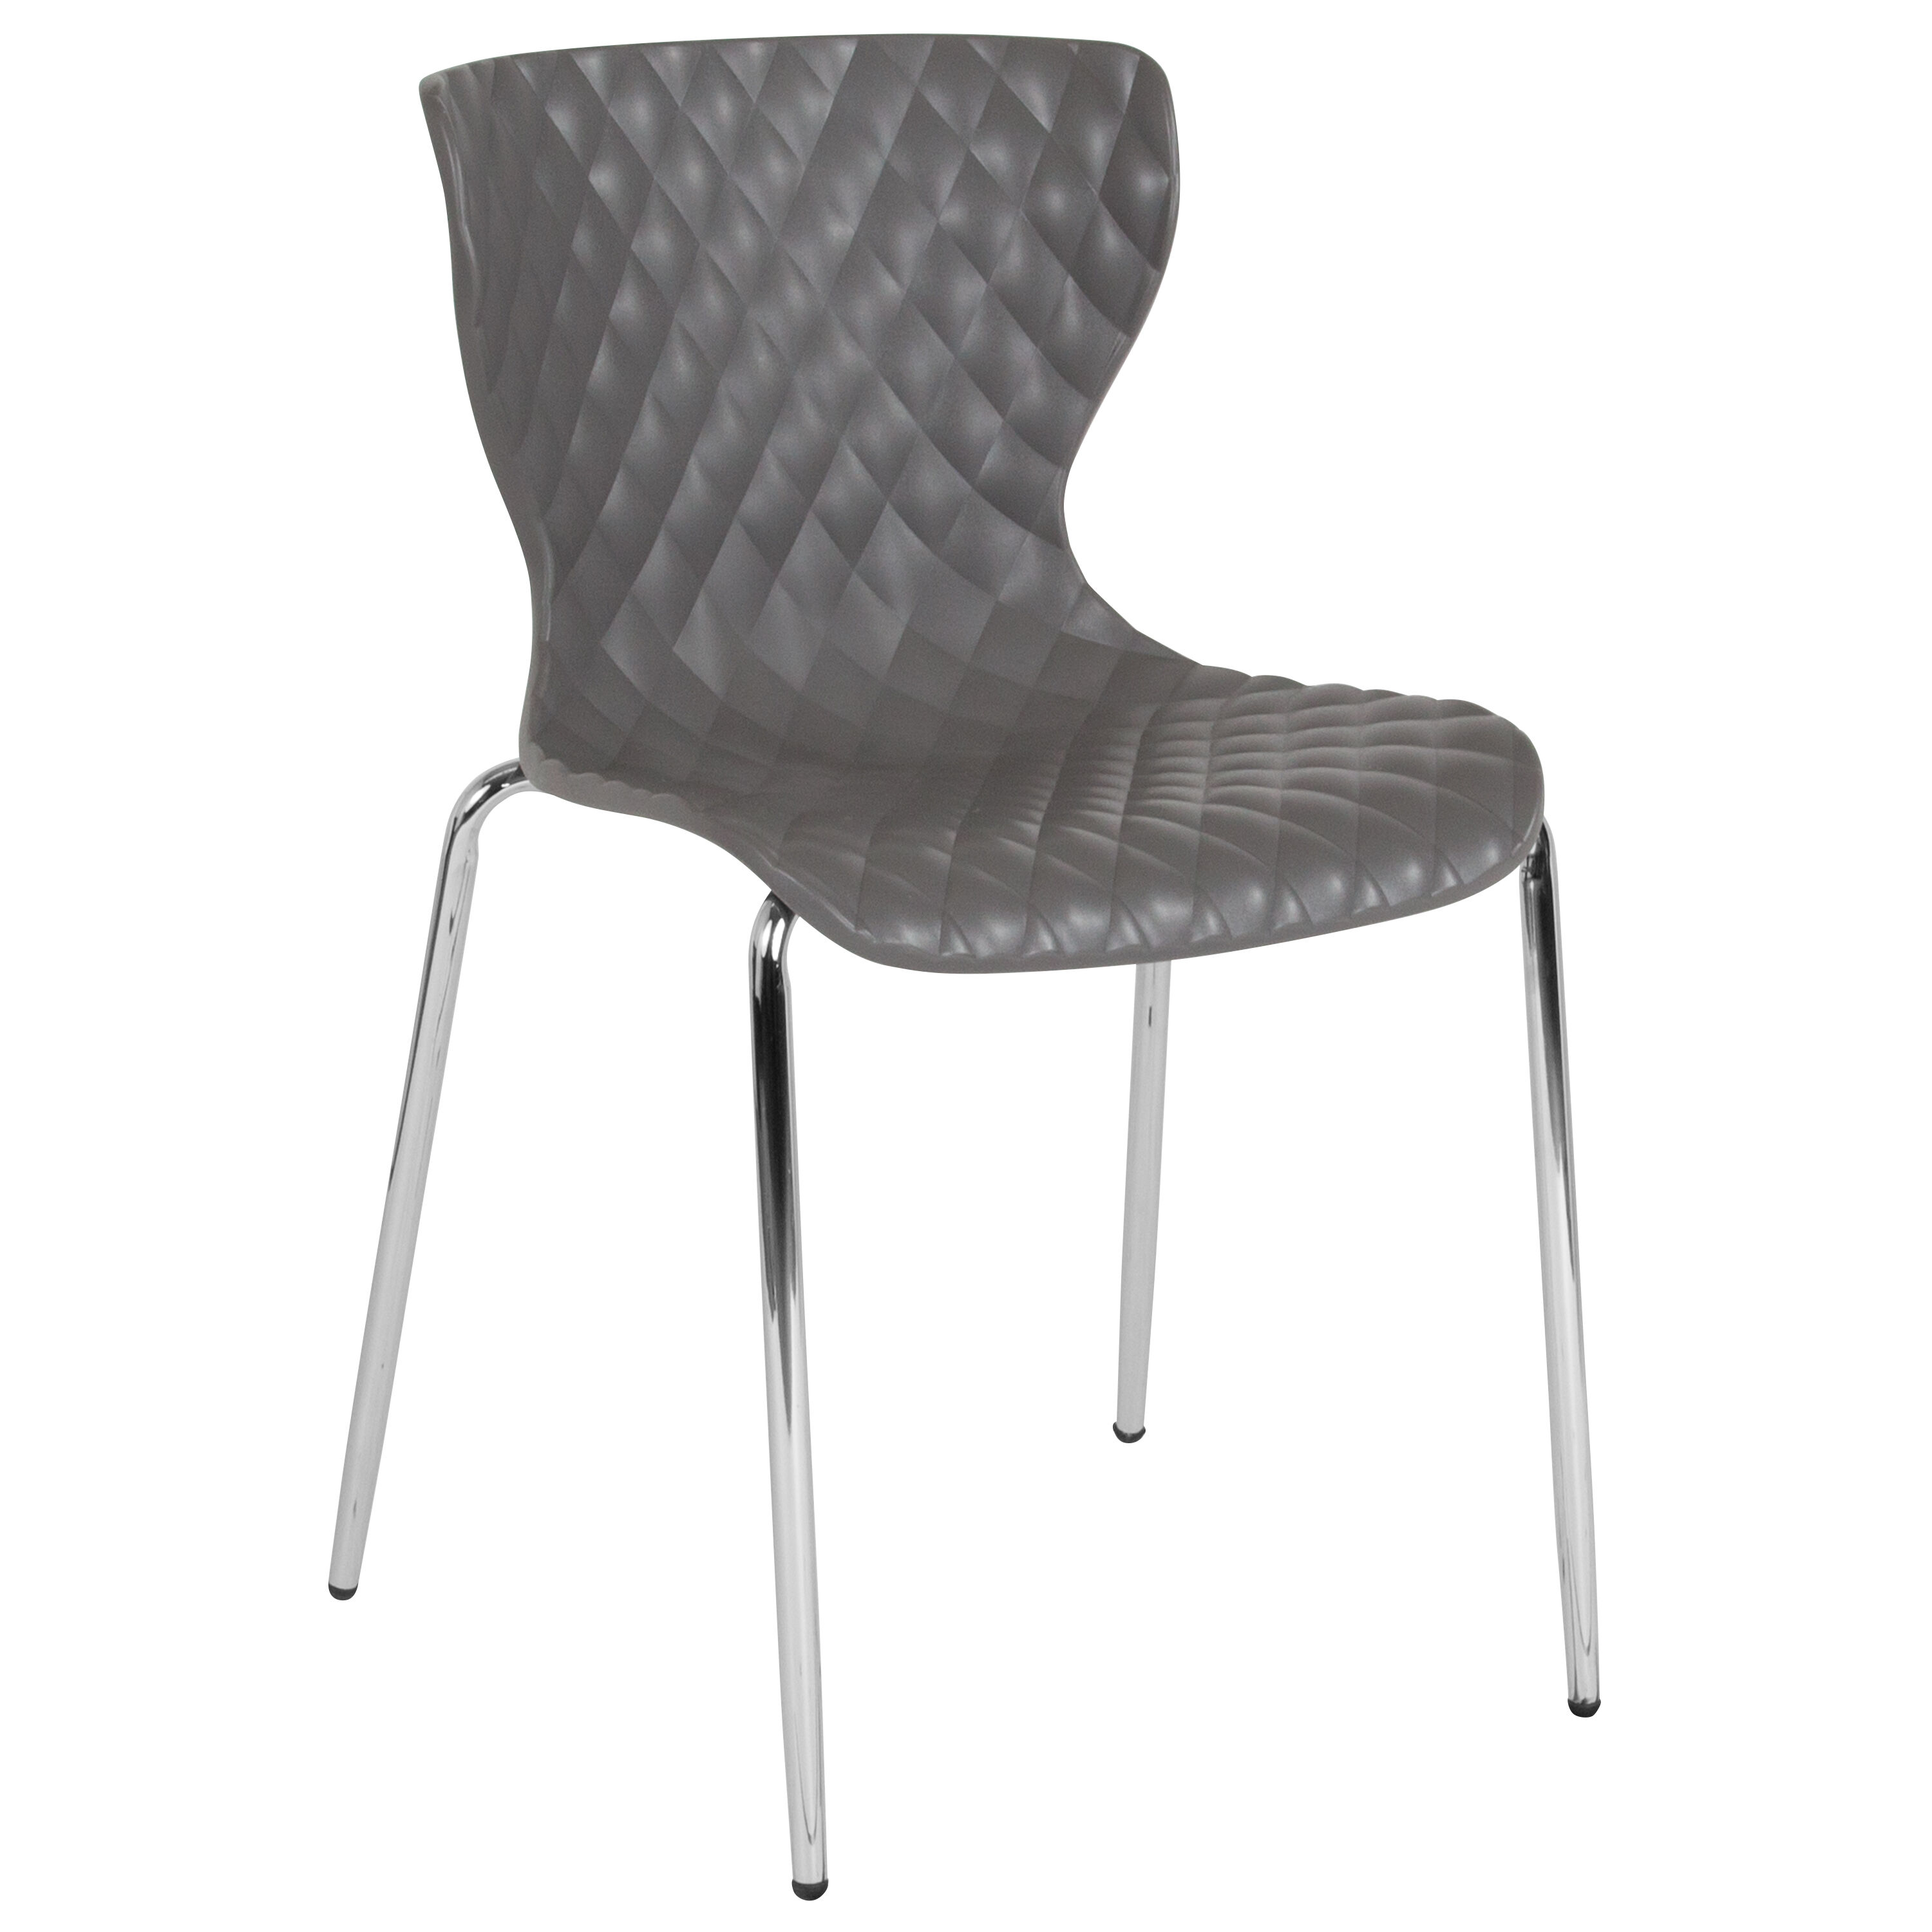 Gray Plastic Stack Chair Lf-7-07c-gry-gg